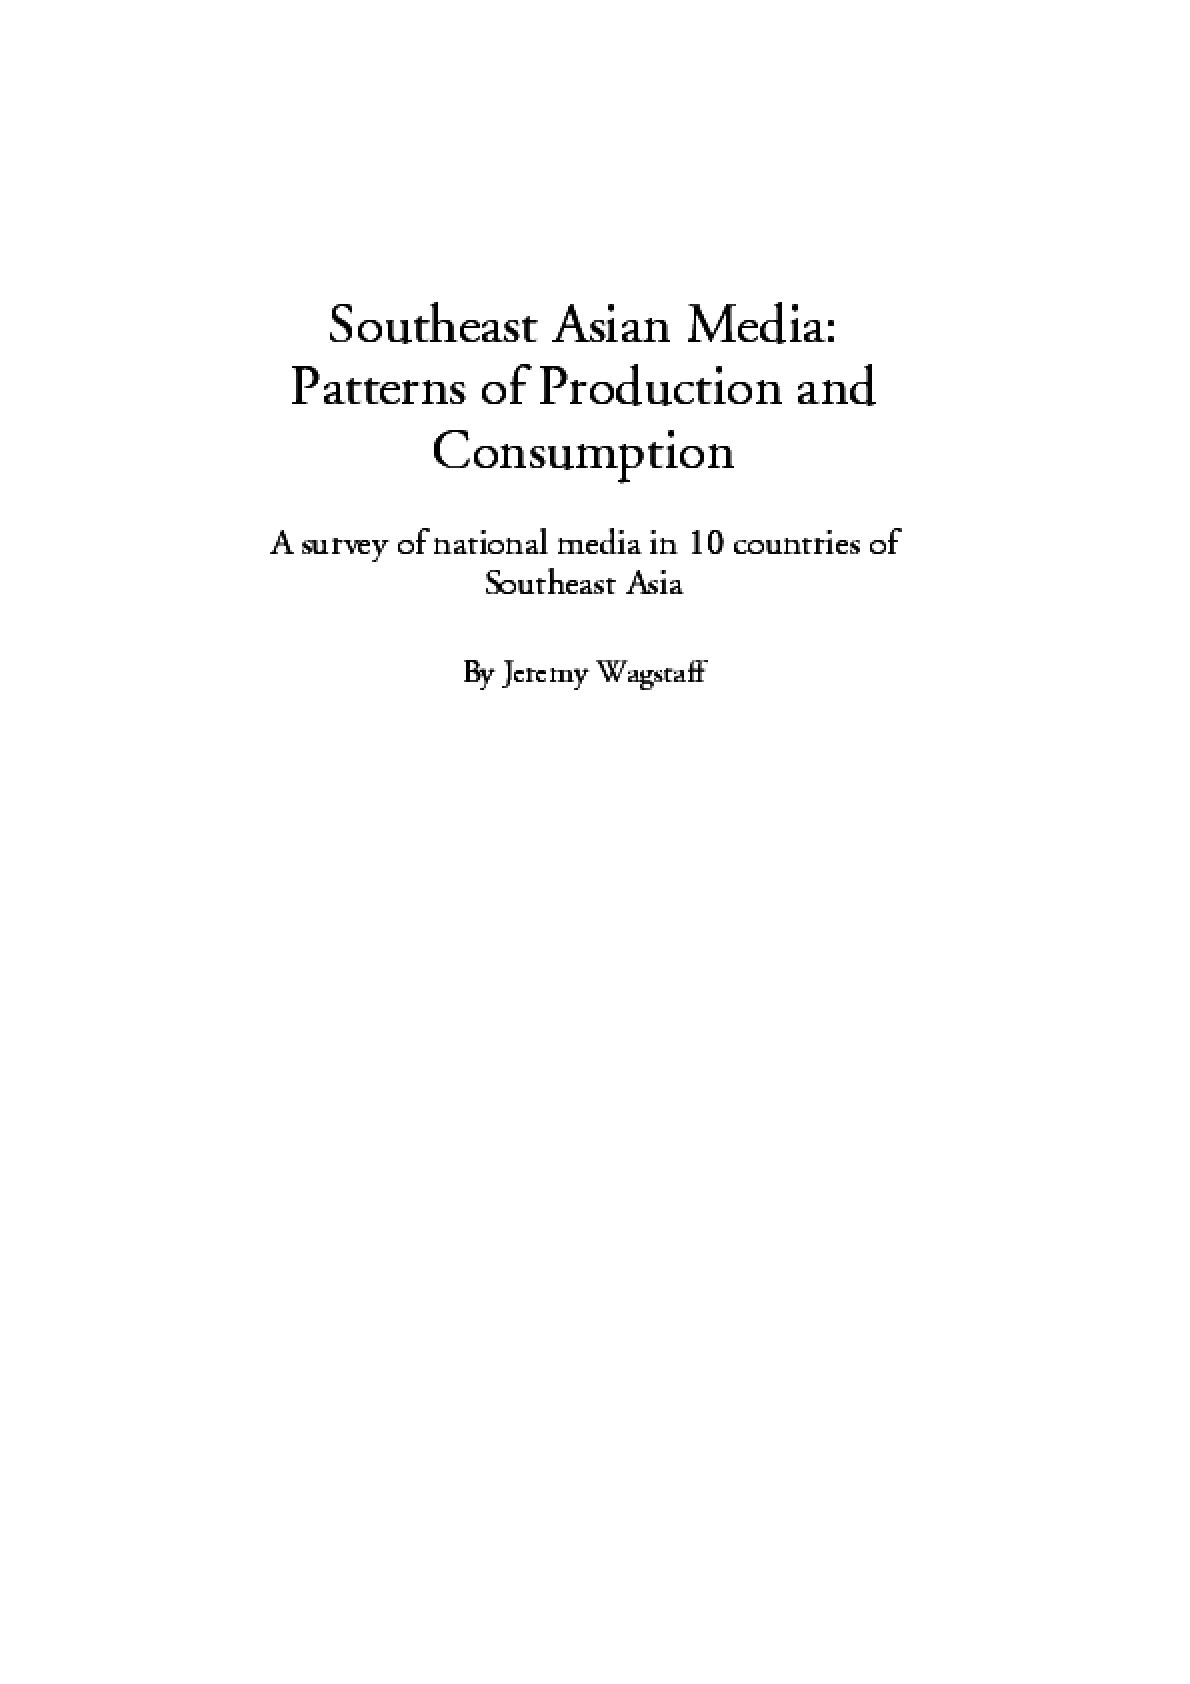 Southeast Asian Media: Patterns of Production and Consumption